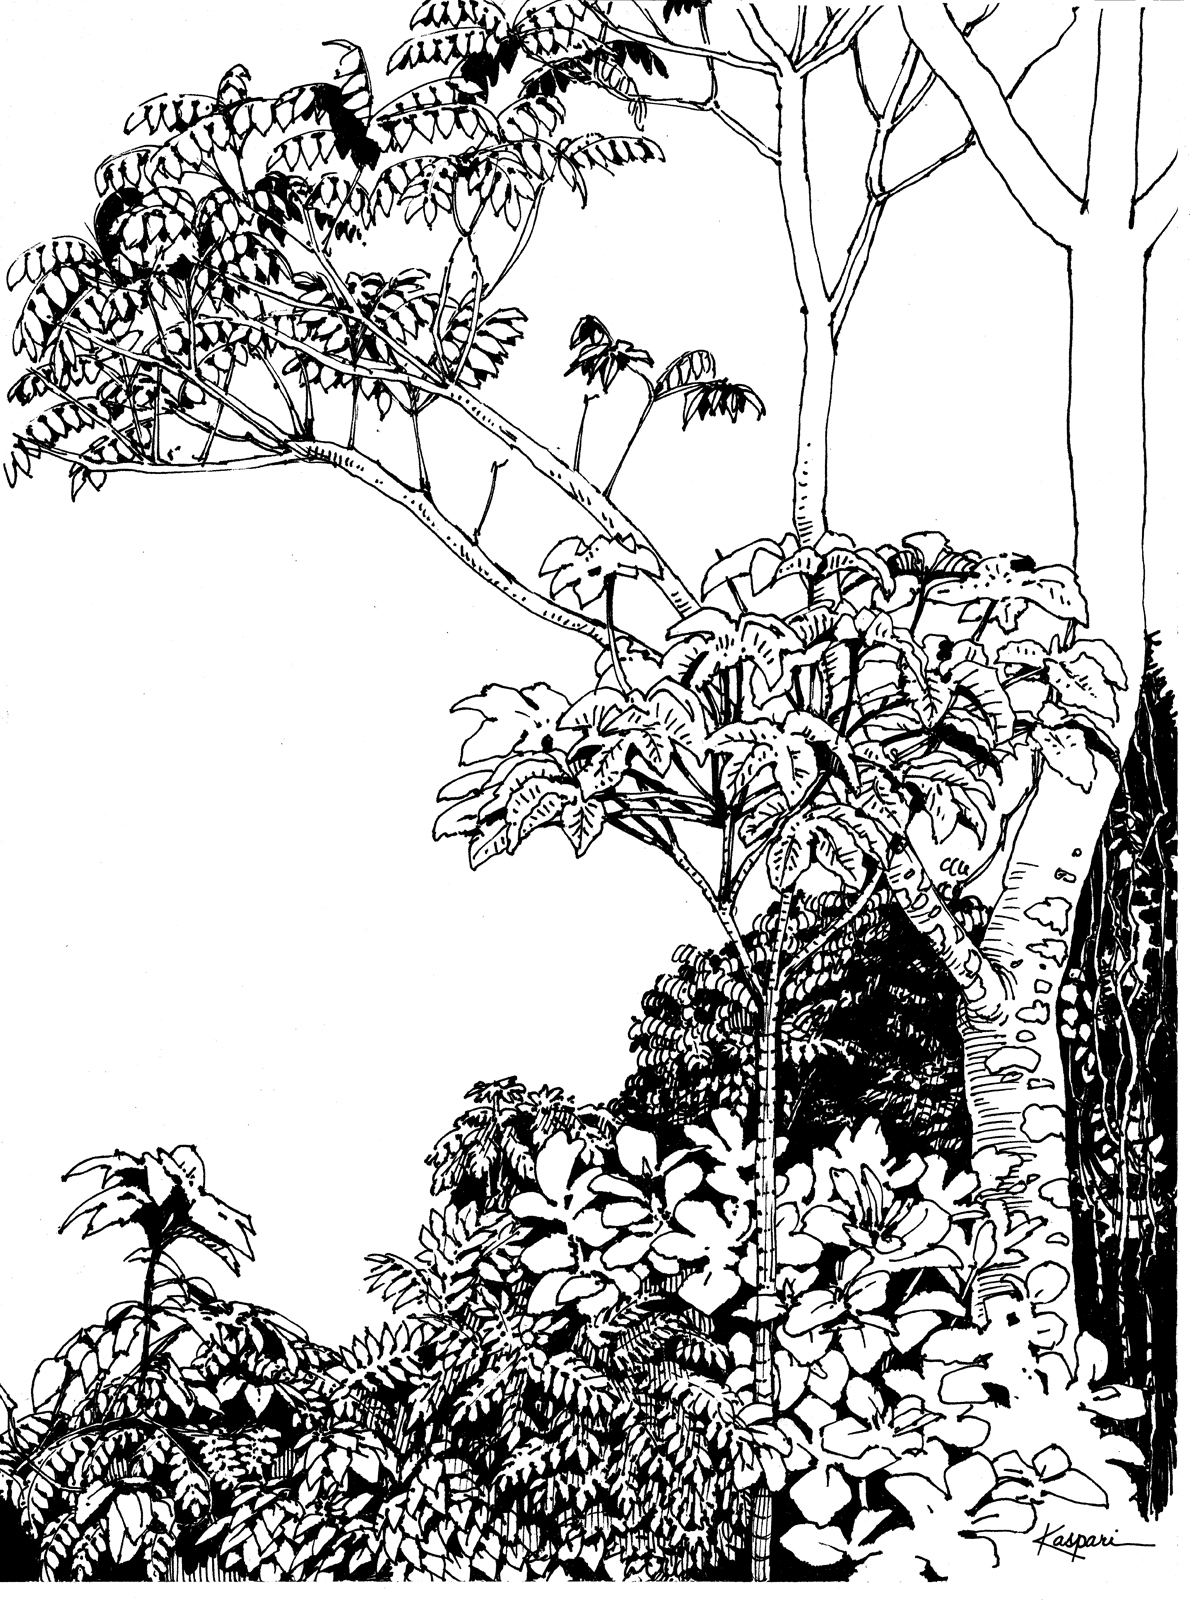 1190x1600 Tropical Rainforest Drawing Drawn Rainforest Tropical Forest